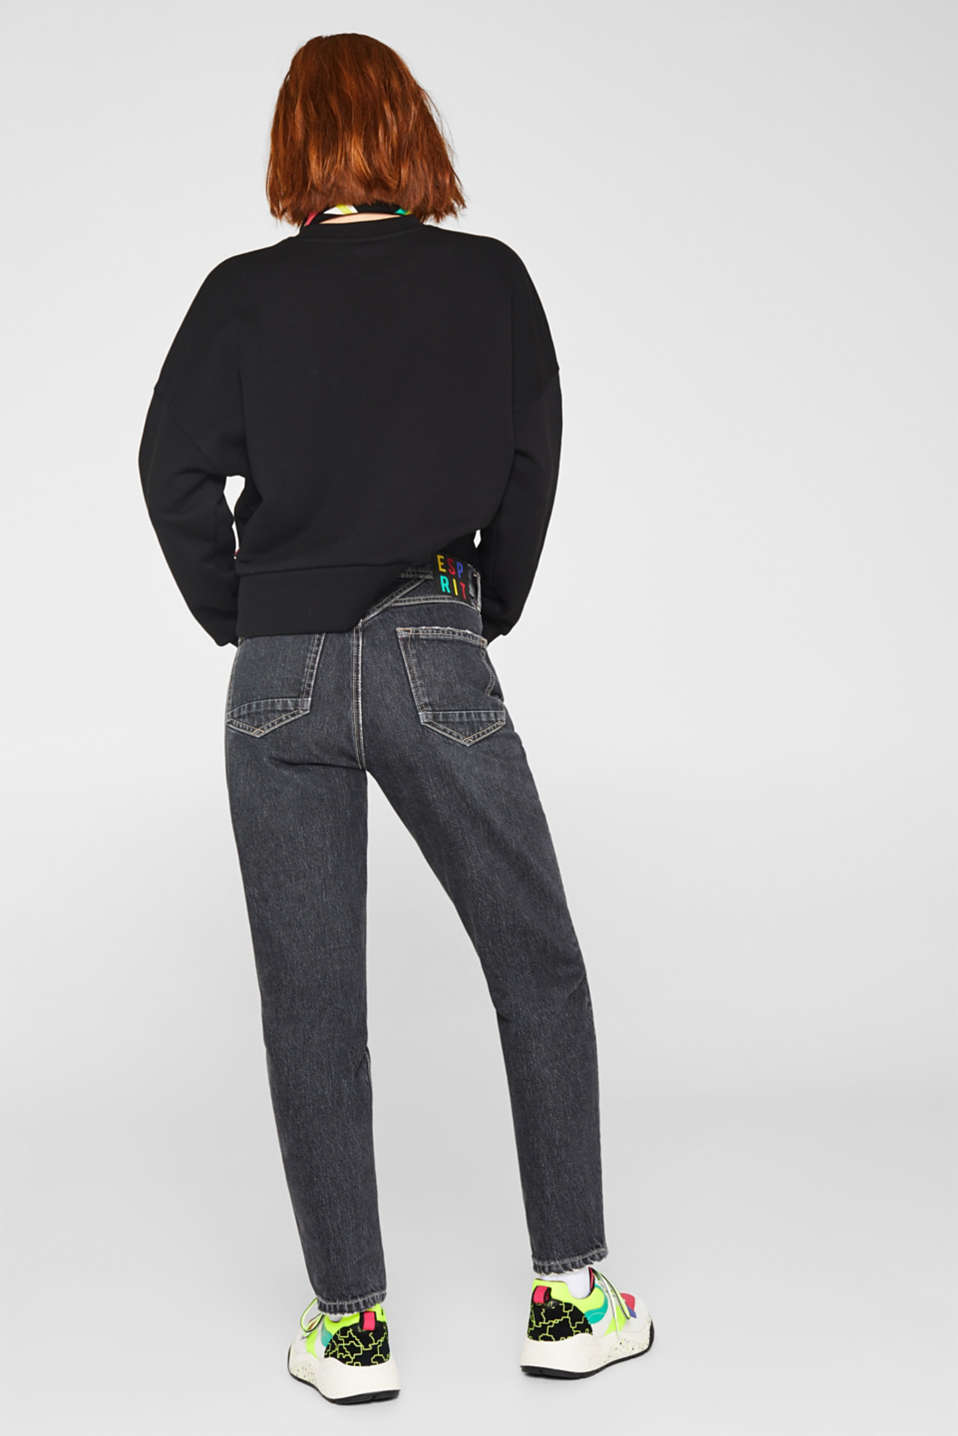 Esprit - #throwback jeans made of 100% cotton